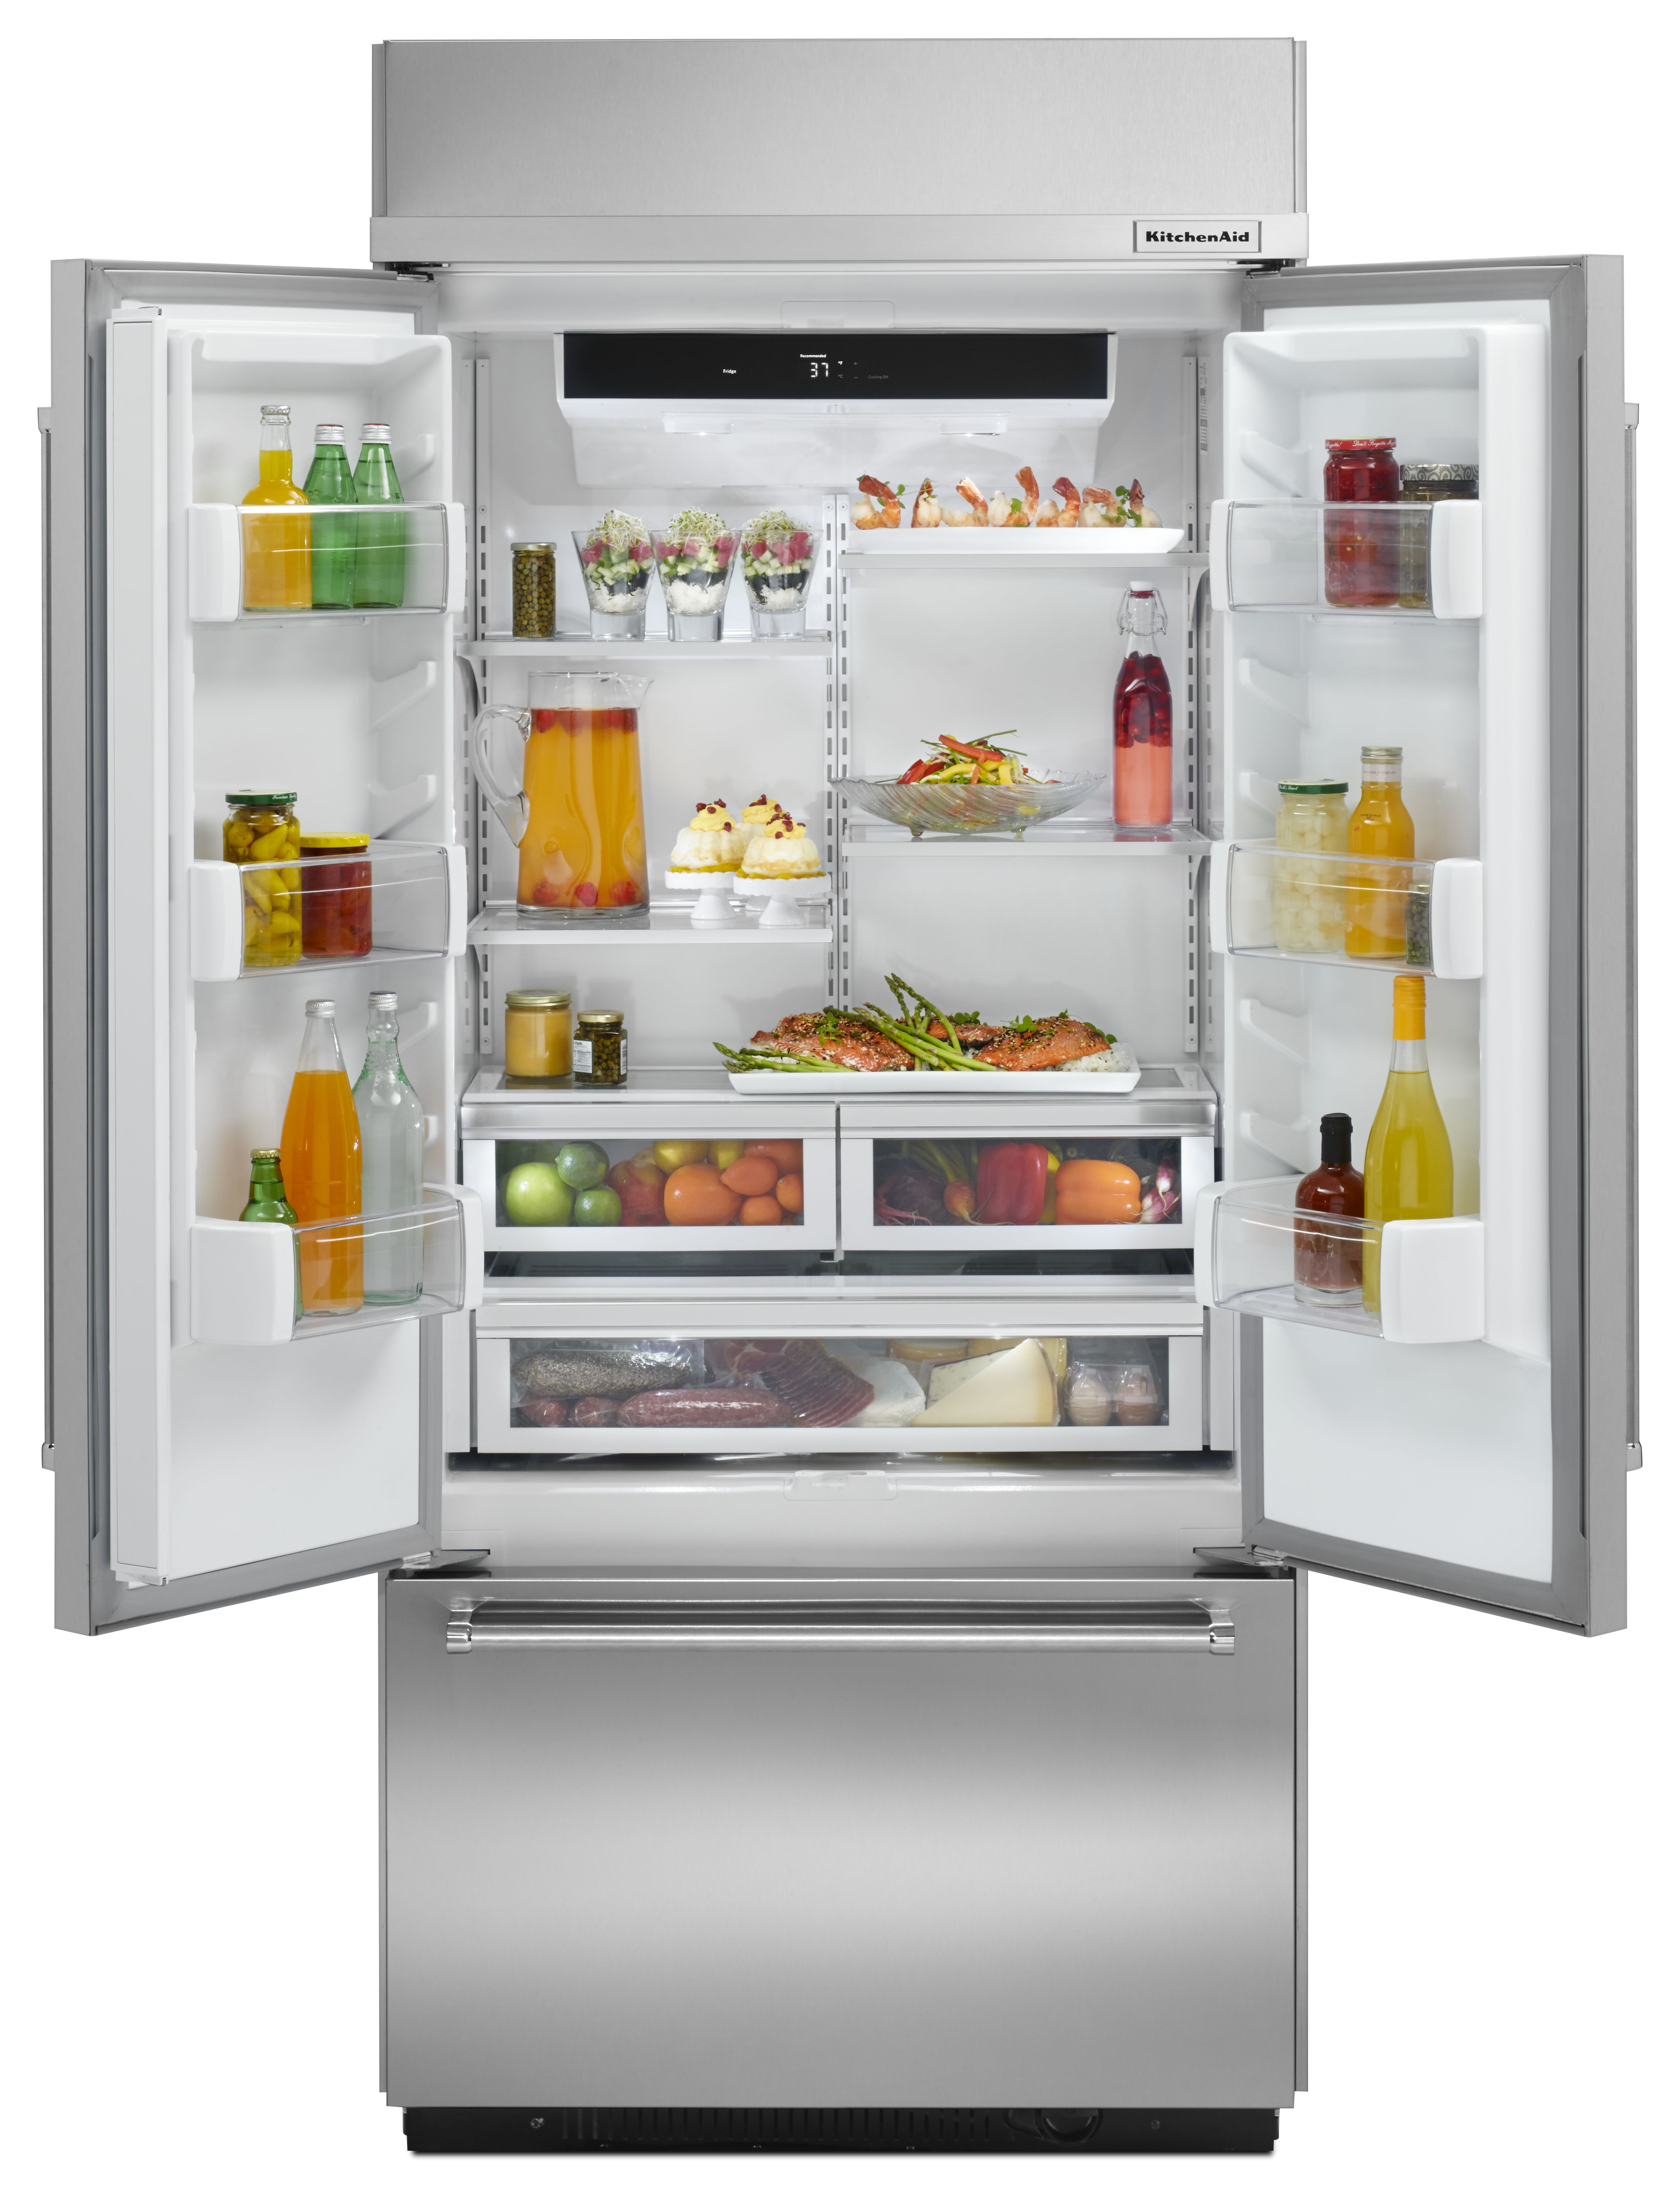 Kitchen Aid 20 5 Cu  Ft  French Door Refrigerator-Stainless